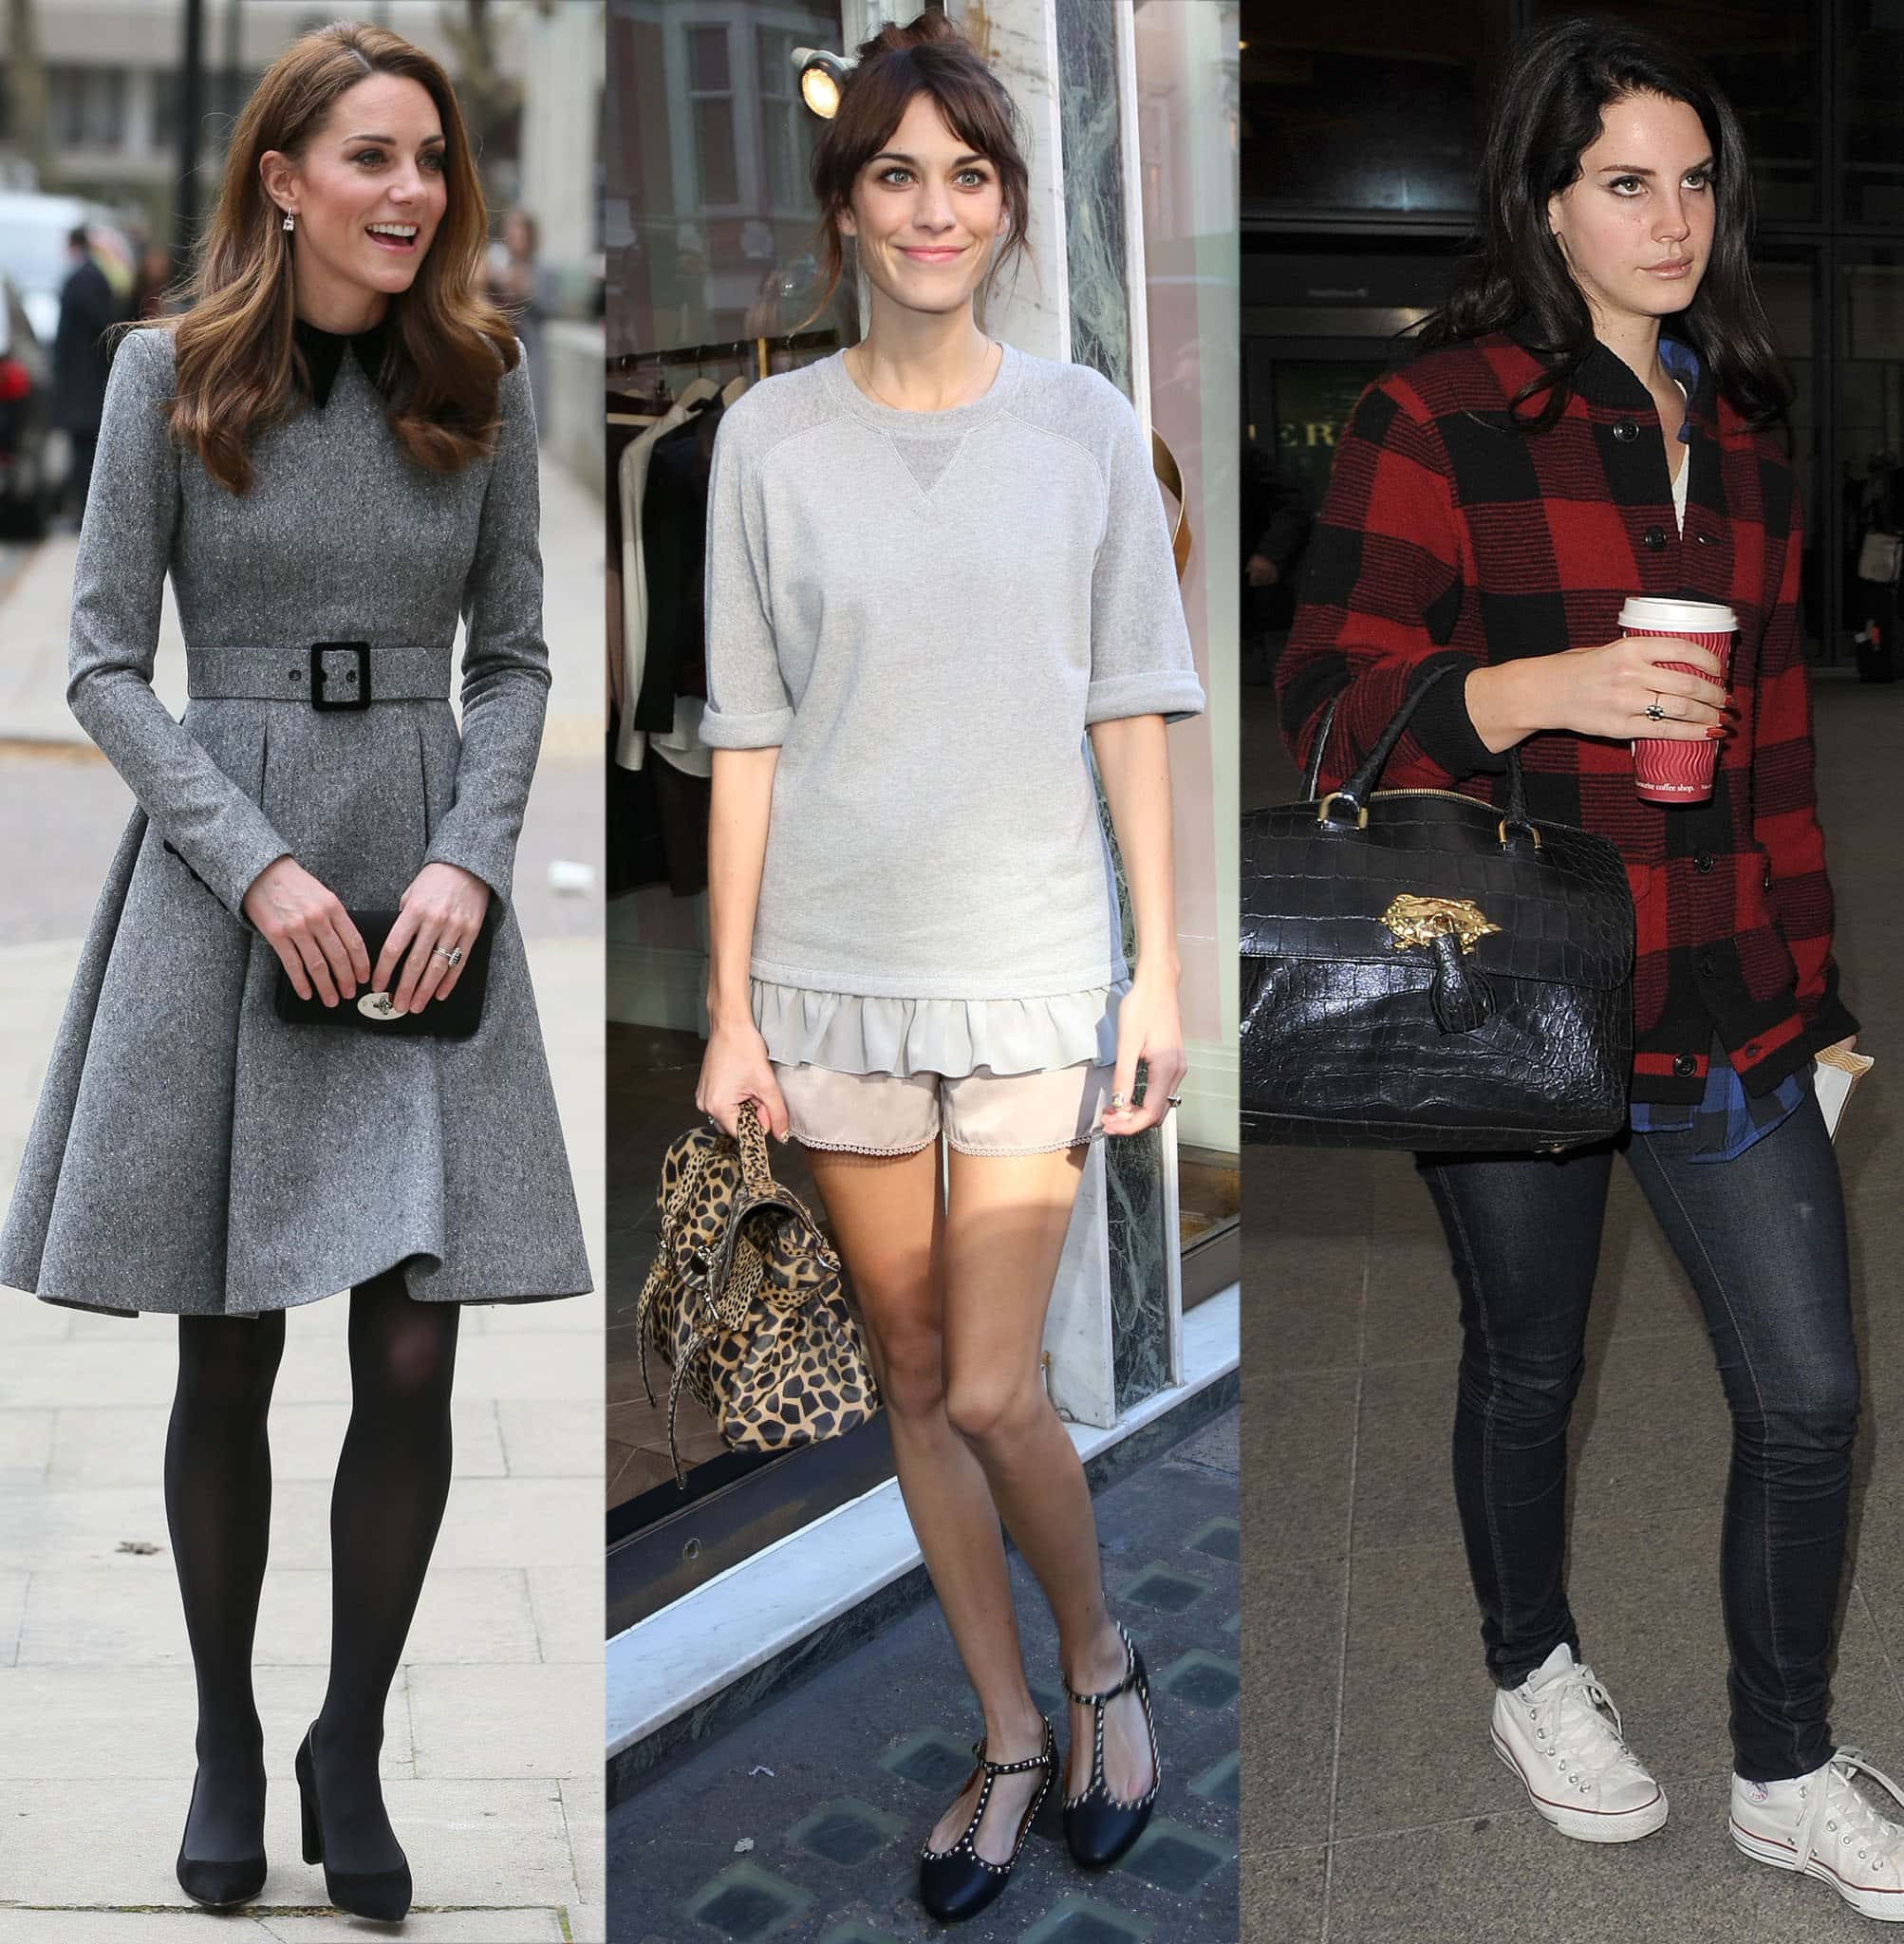 Catherine Duchess of Cambridge, Alexa Chung, and Lana Del Rey carrying different Mulberry bags